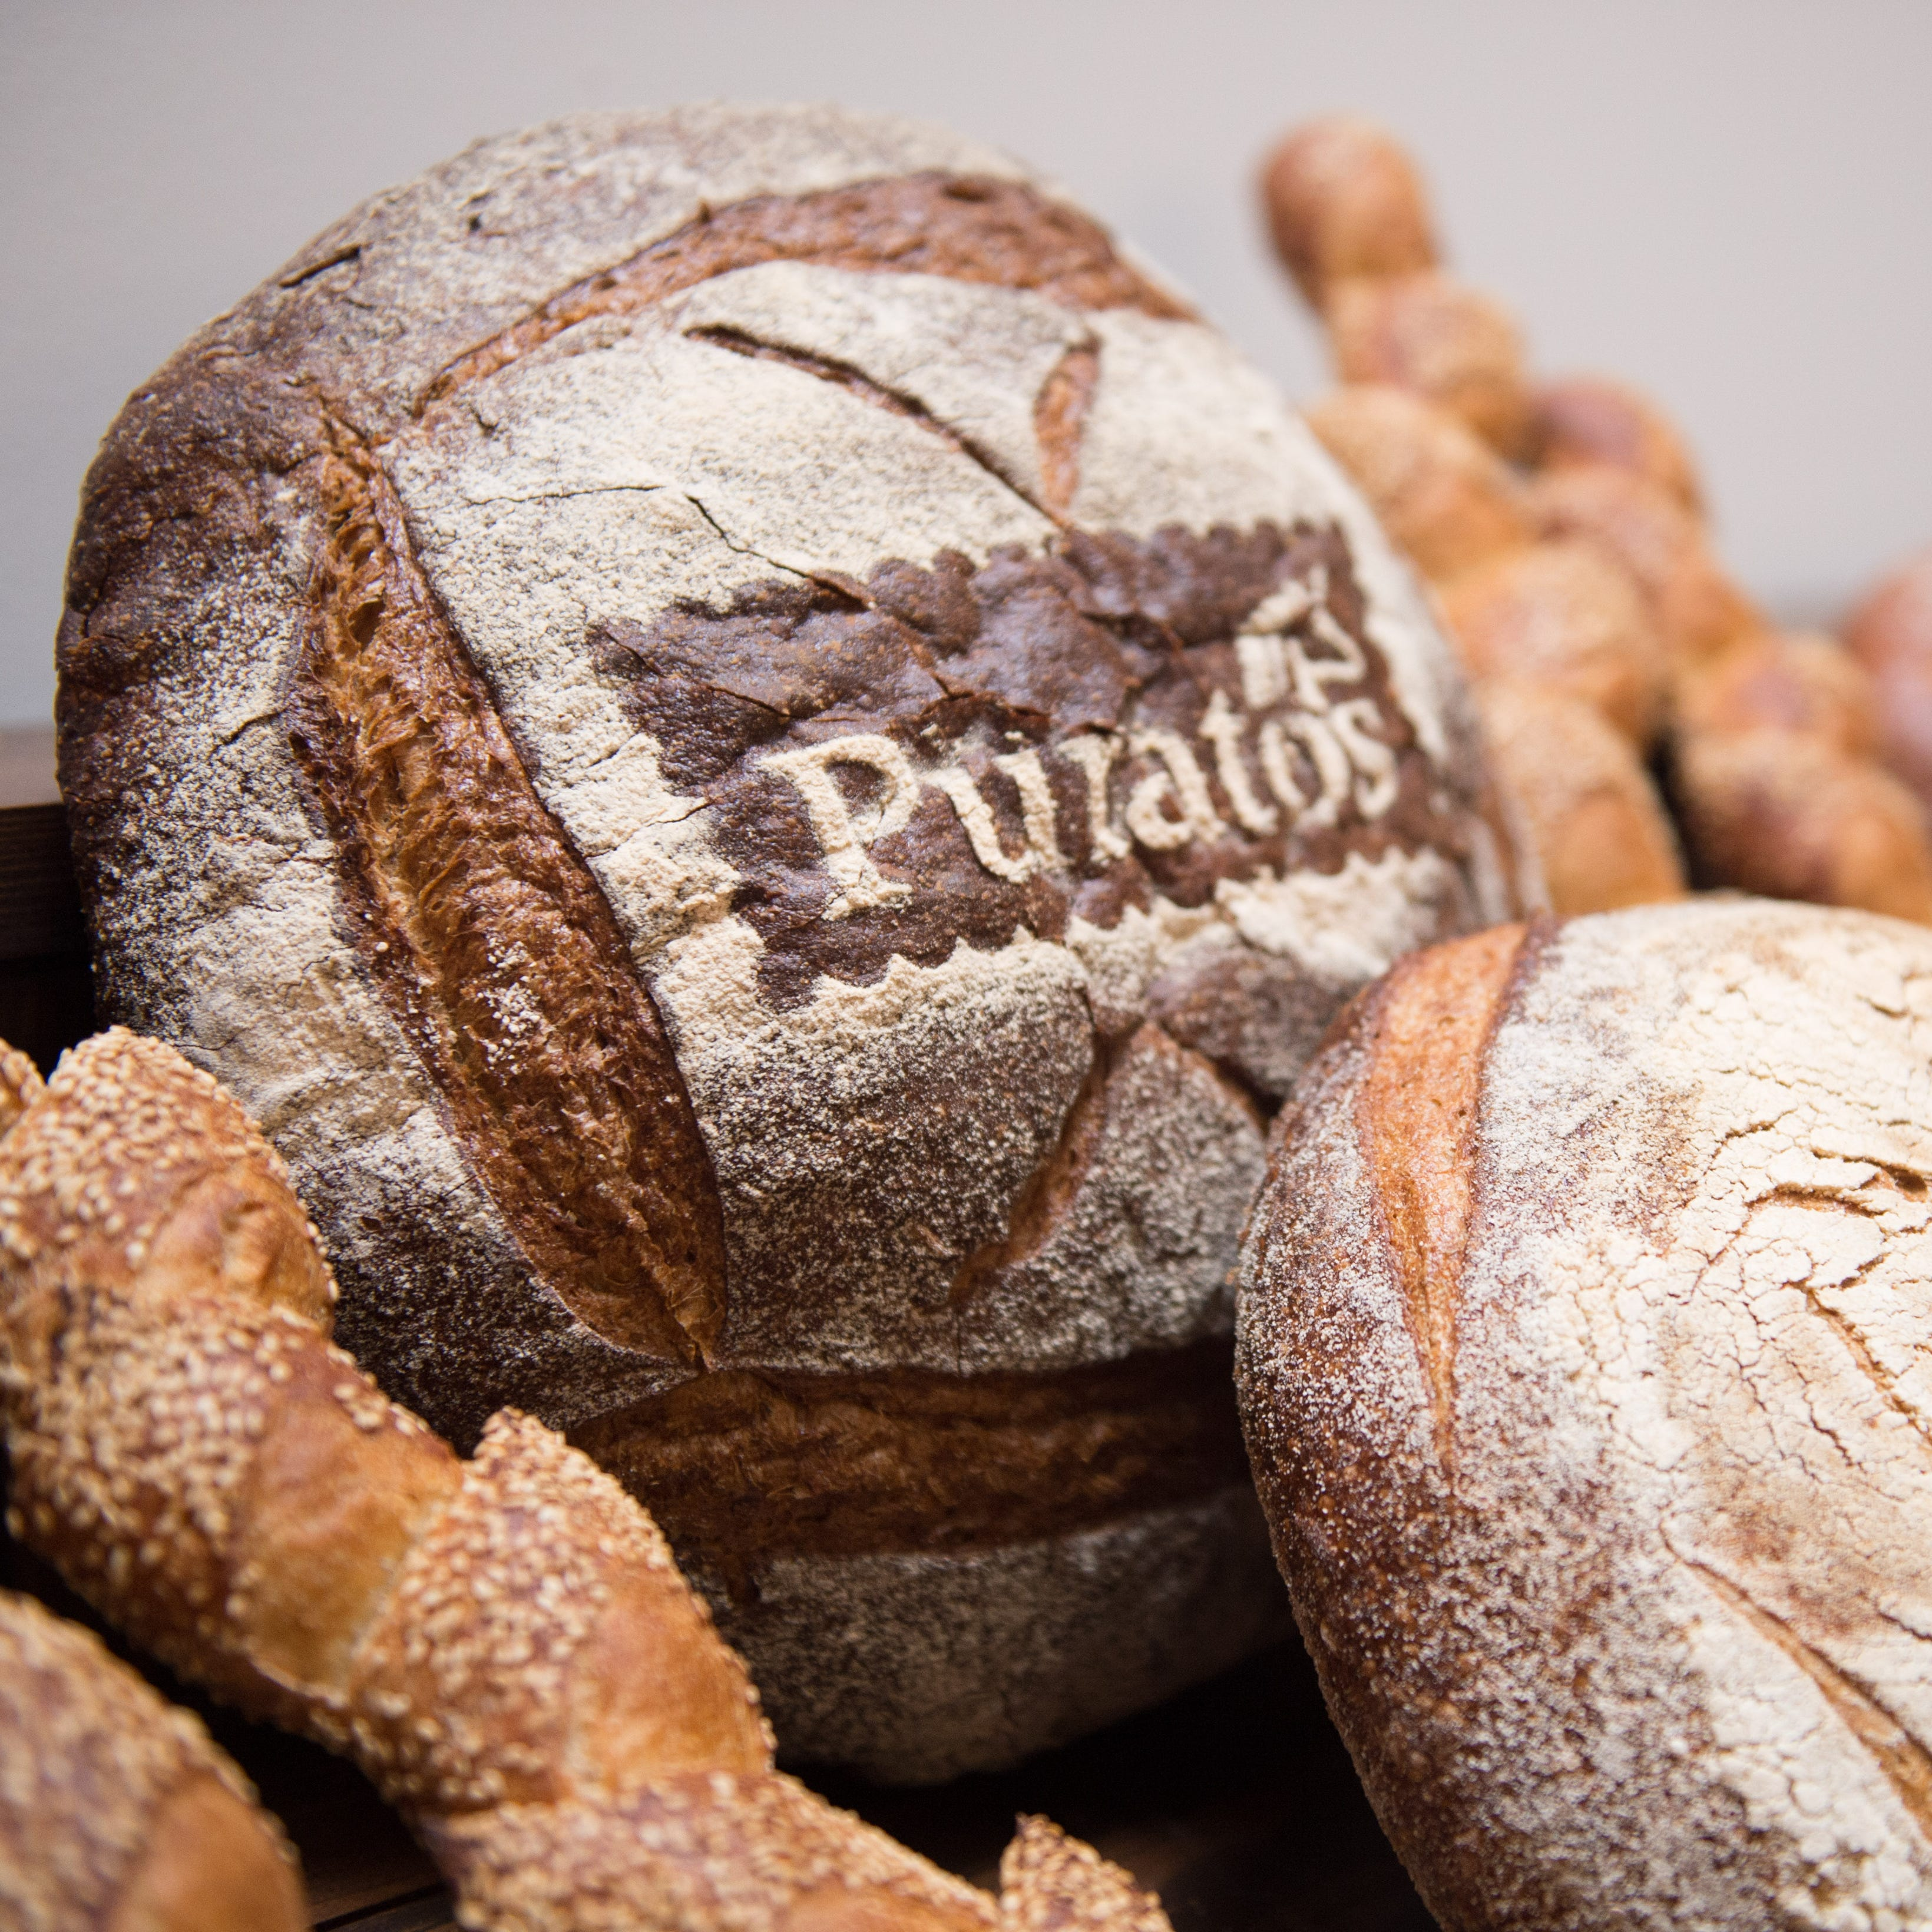 Old world style bread products sit on display during the grand opening for a new research and development center at Puratos national headquarters in Pennsauken, N.J. on Friday, Sept. 7, 2018.